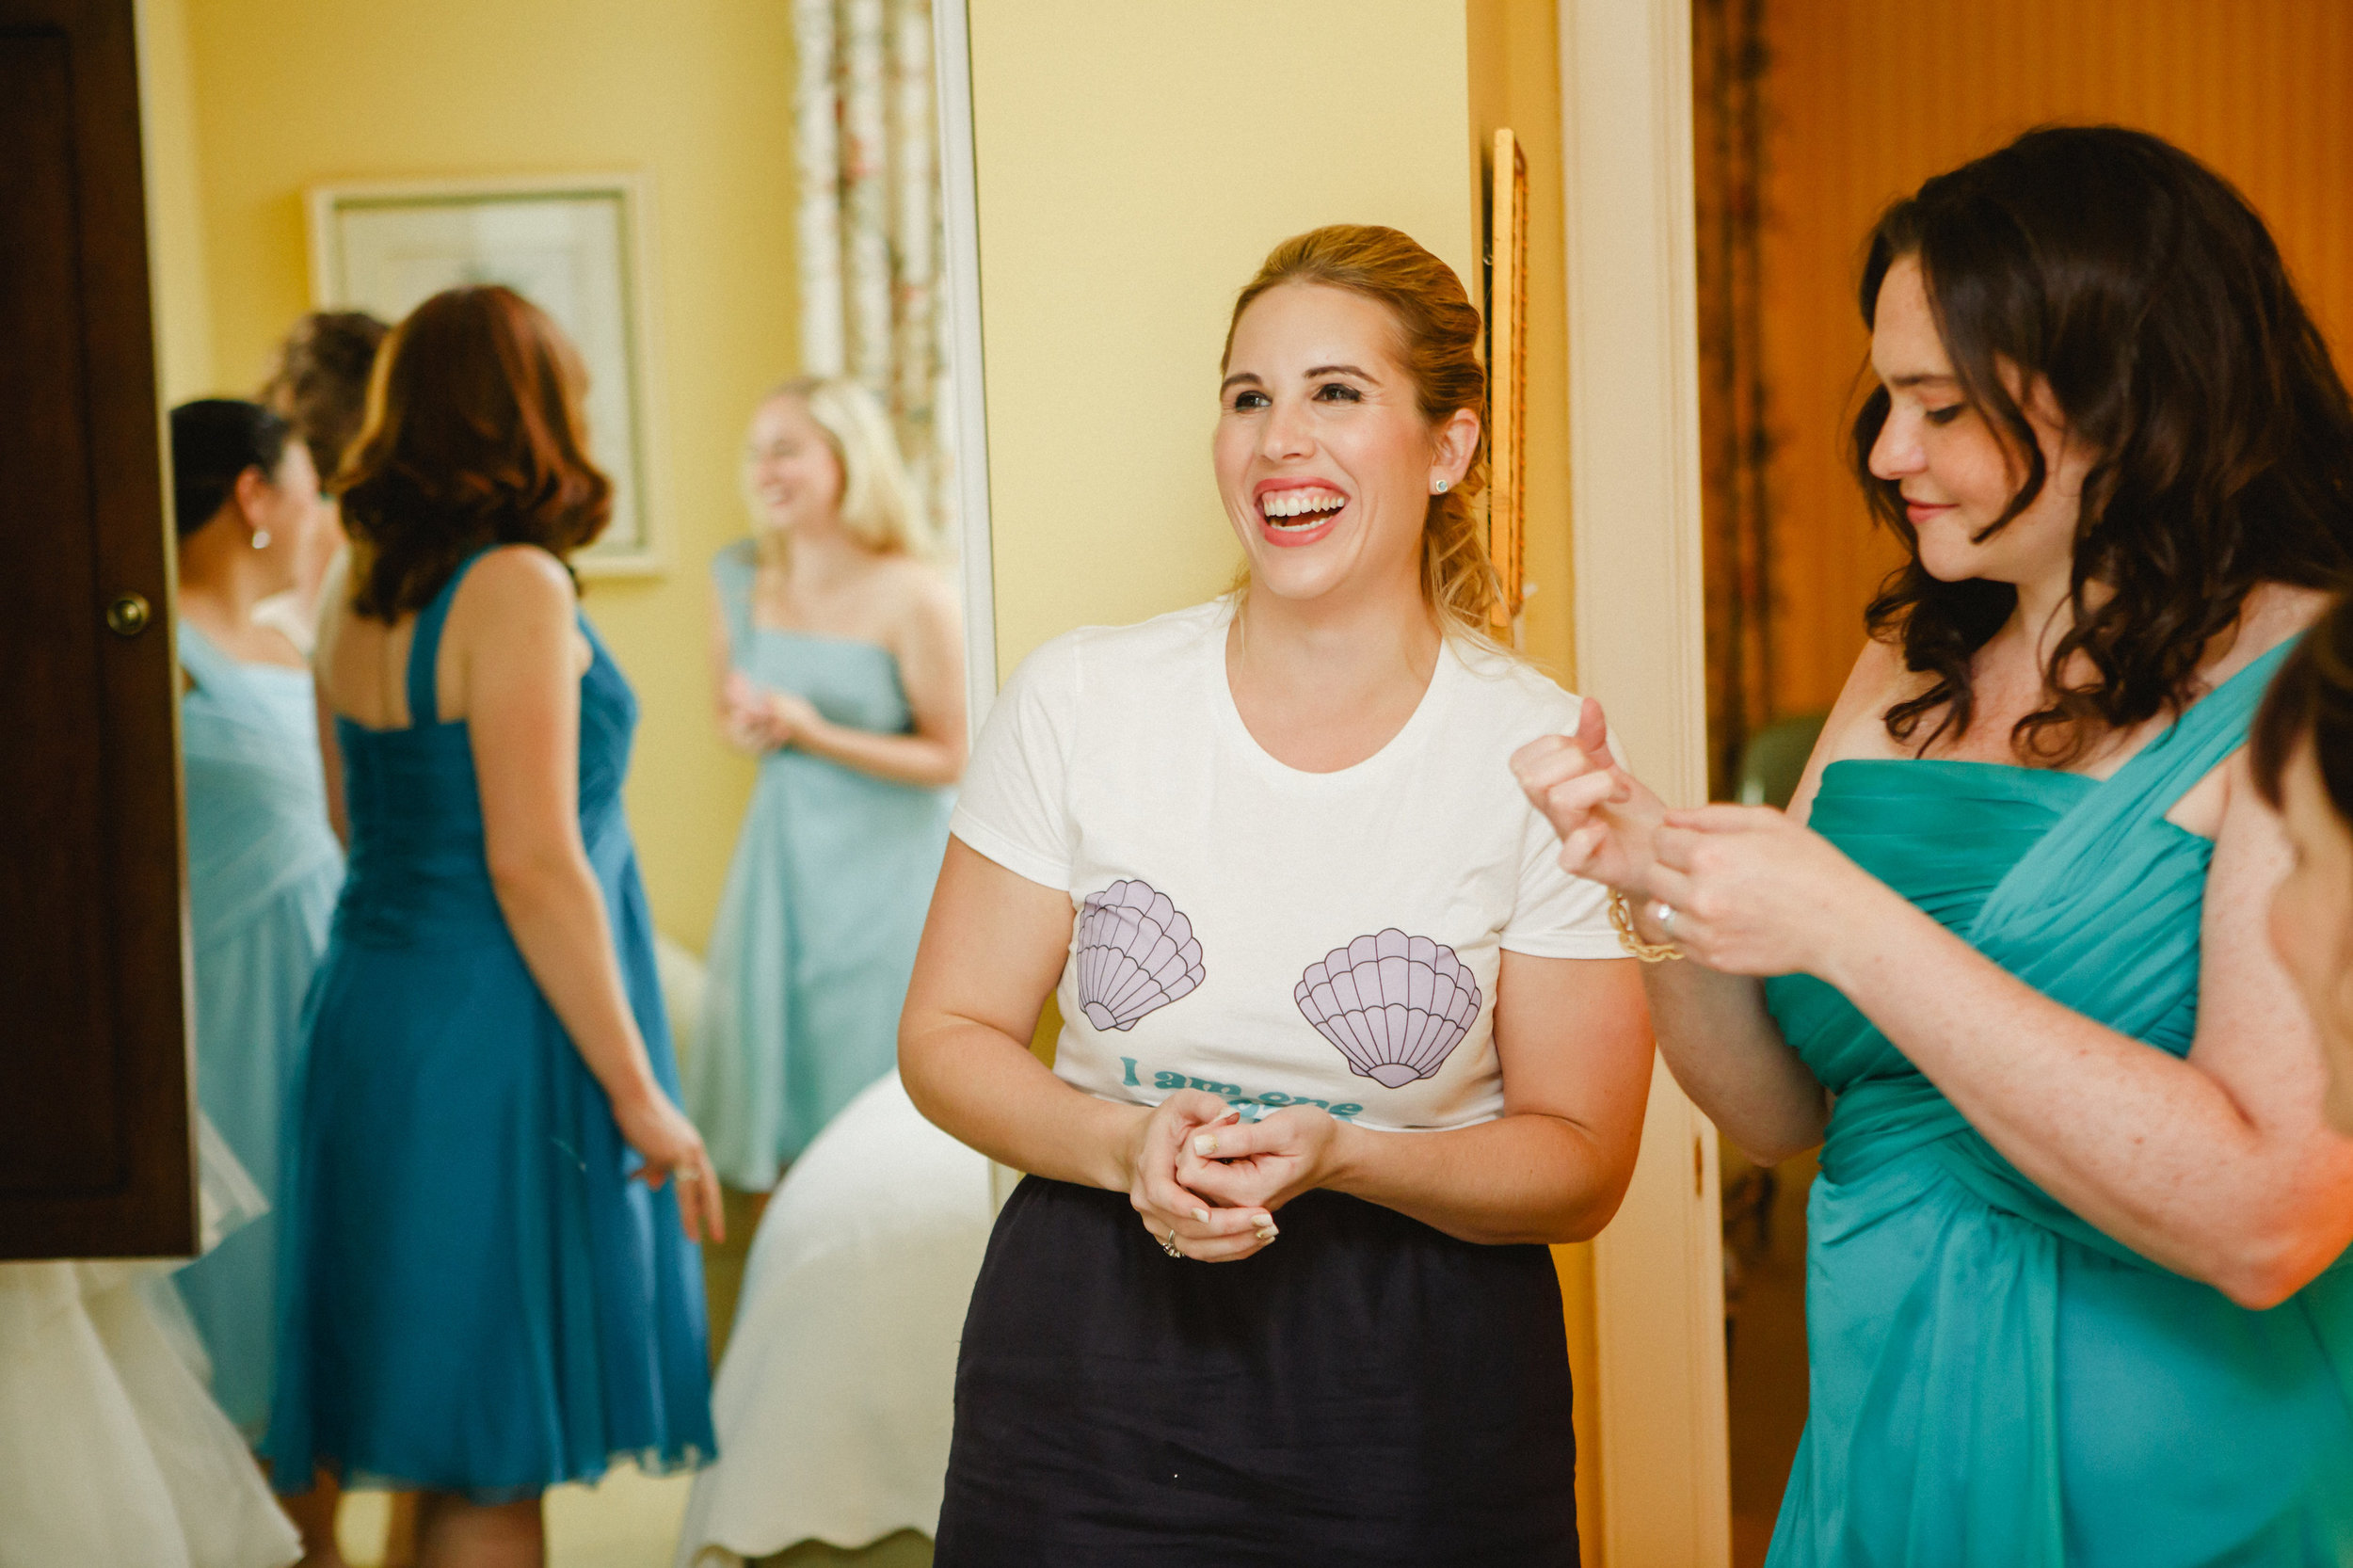 Vness-Photography-Chevy-Chase-Country-Club-A&R-Wedding-127.jpg